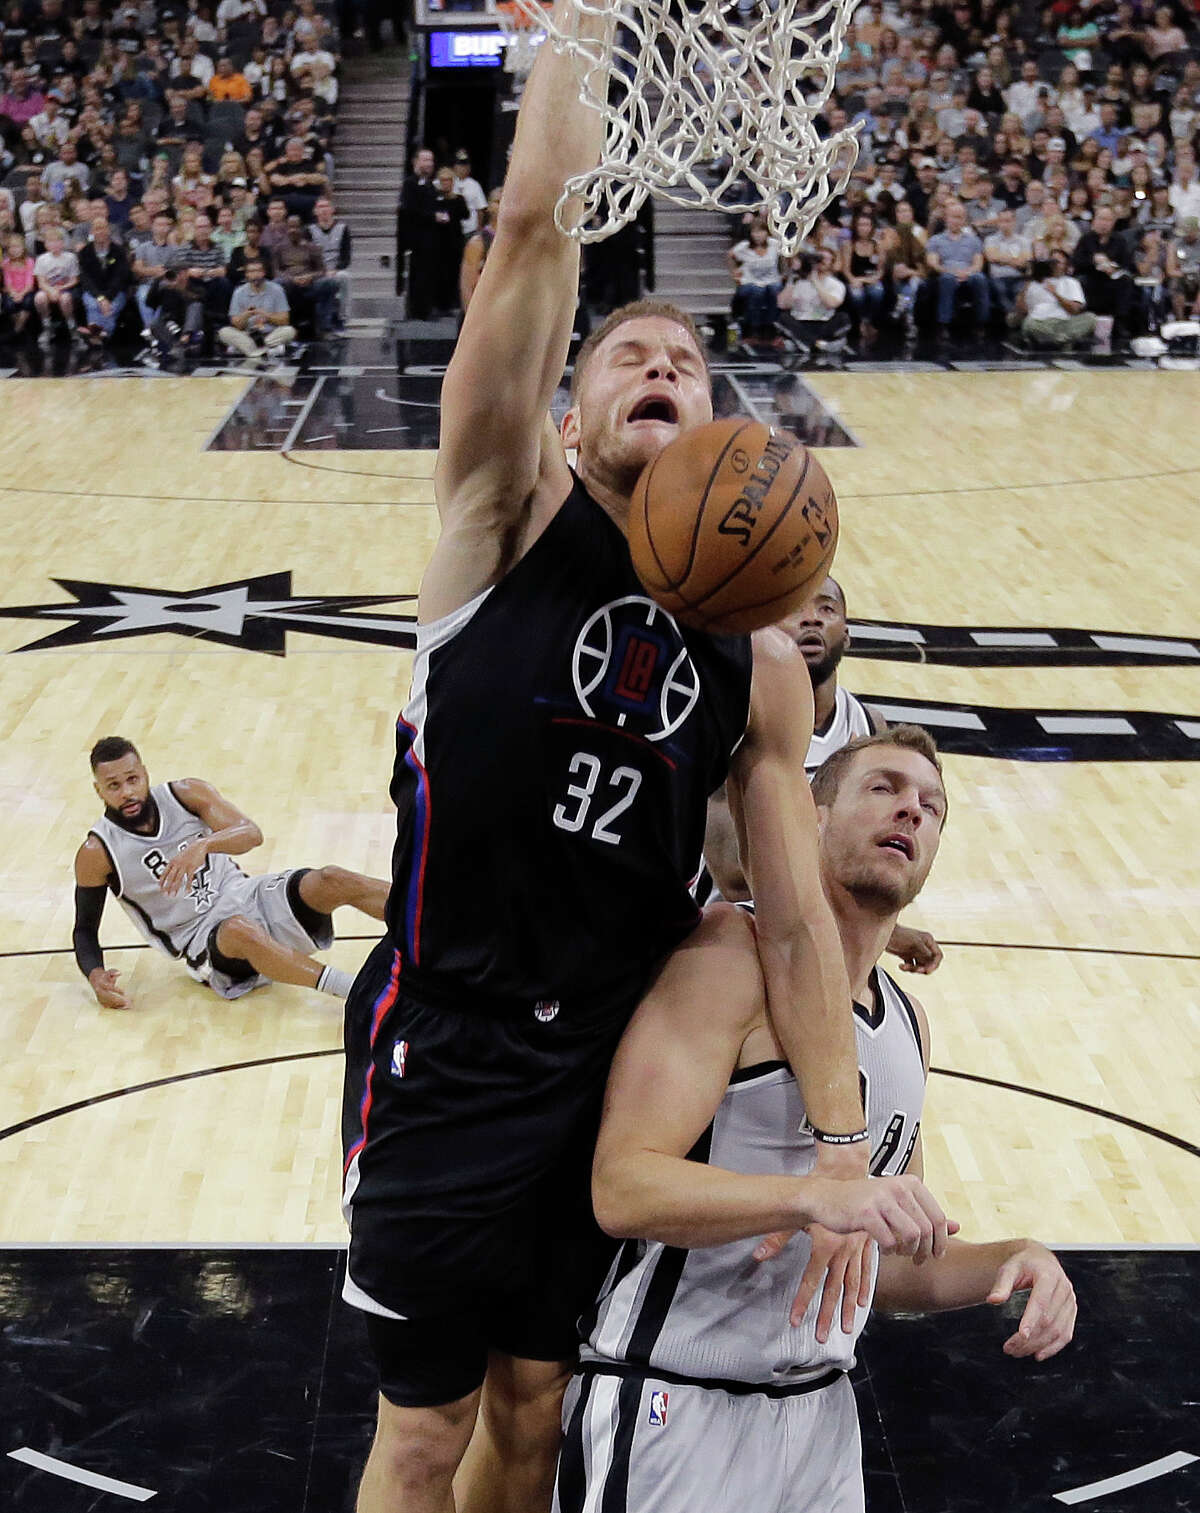 Los Angeles Clippers forward Blake Griffin (32) scores over San Antonio Spurs forward David Lee (10) during the first half of an NBA basketball game, Saturday, Nov. 5, 2016, in San Antonio. (AP Photo/Eric Gay)